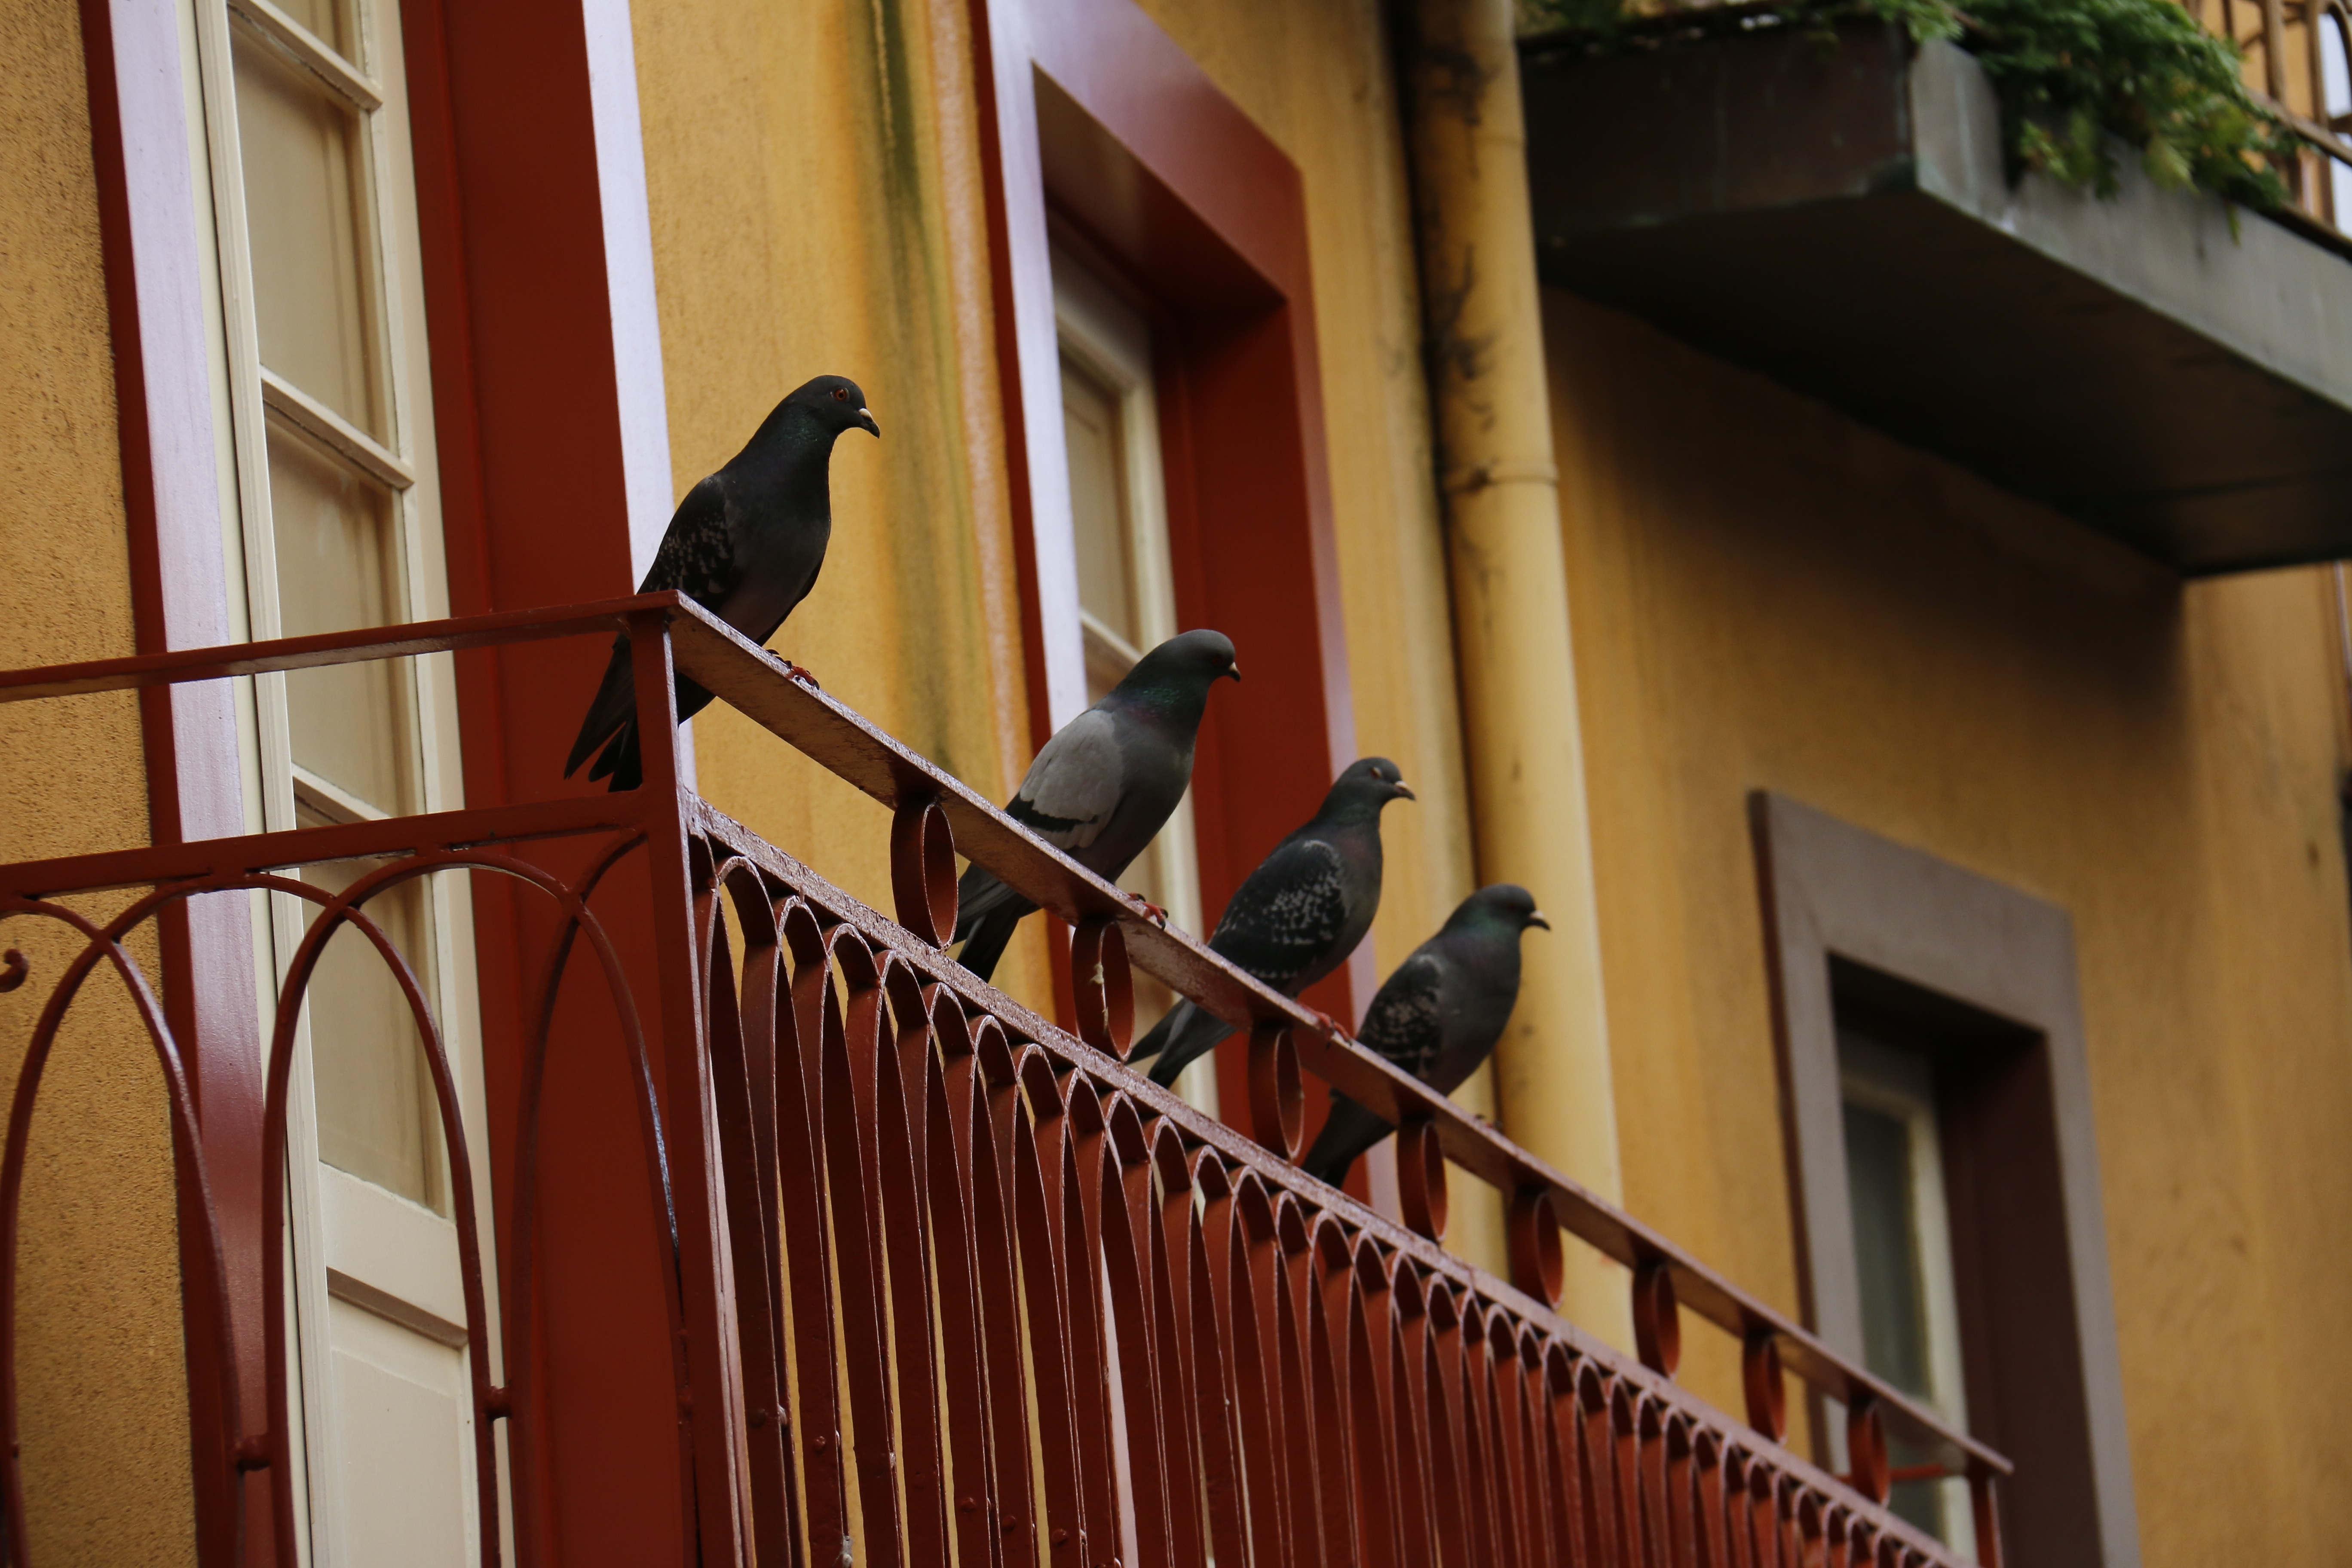 architecture-wood-window-old-wall-balcony-facade-handrail-pigeon-stairs-classic-baluster-outdoor-structure-665635.jpg